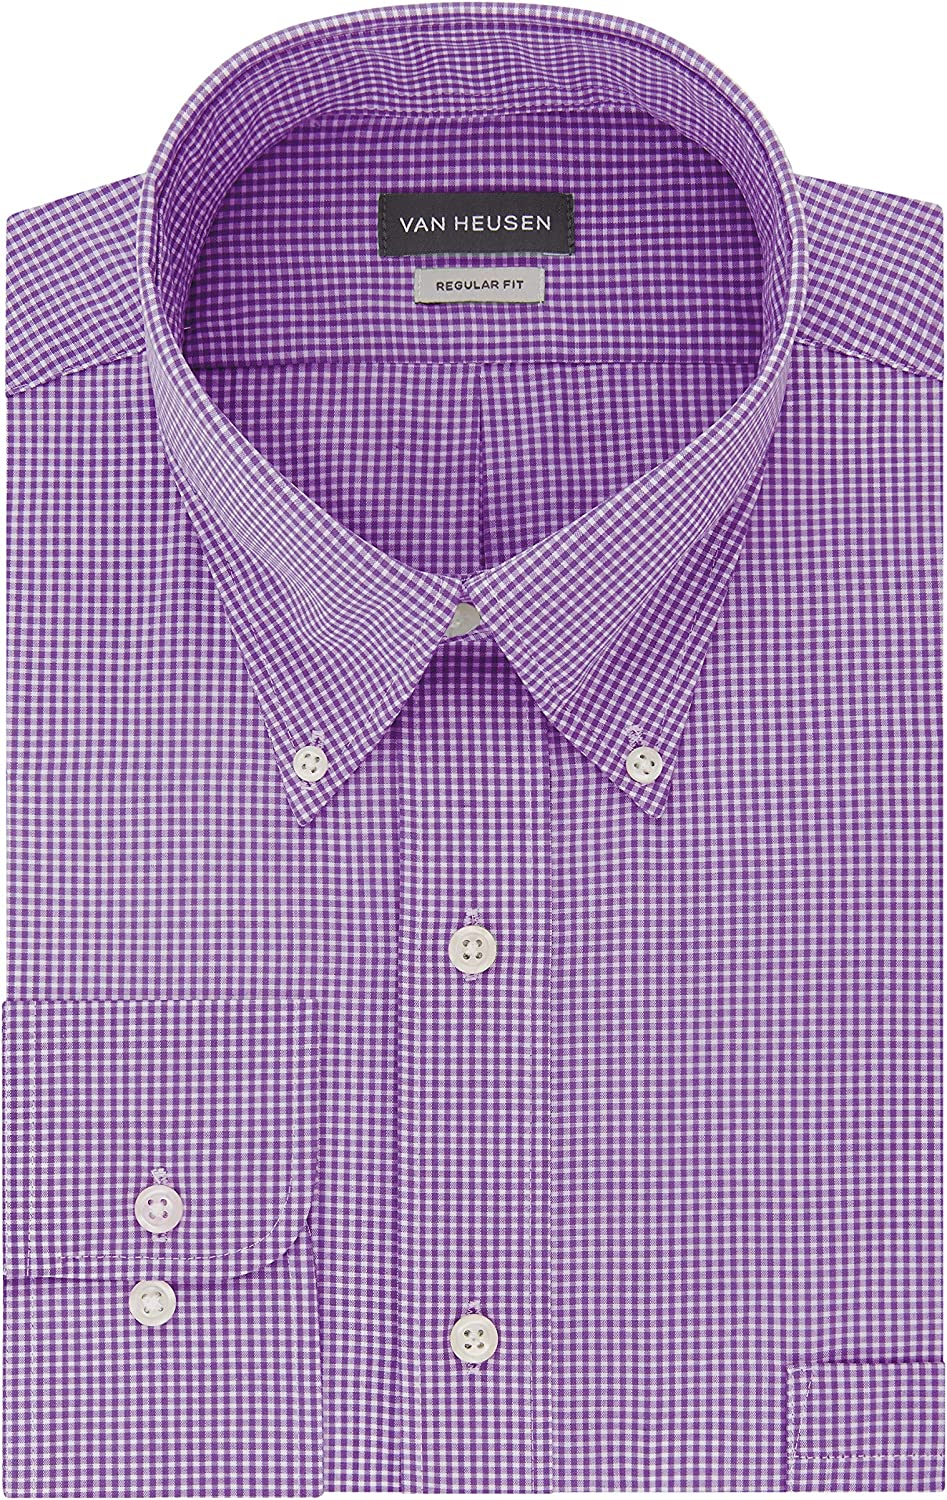 Van Heusen Mens Dress Shirts Regular Fit Gingham Button Down Collar at  Men's Clothing store